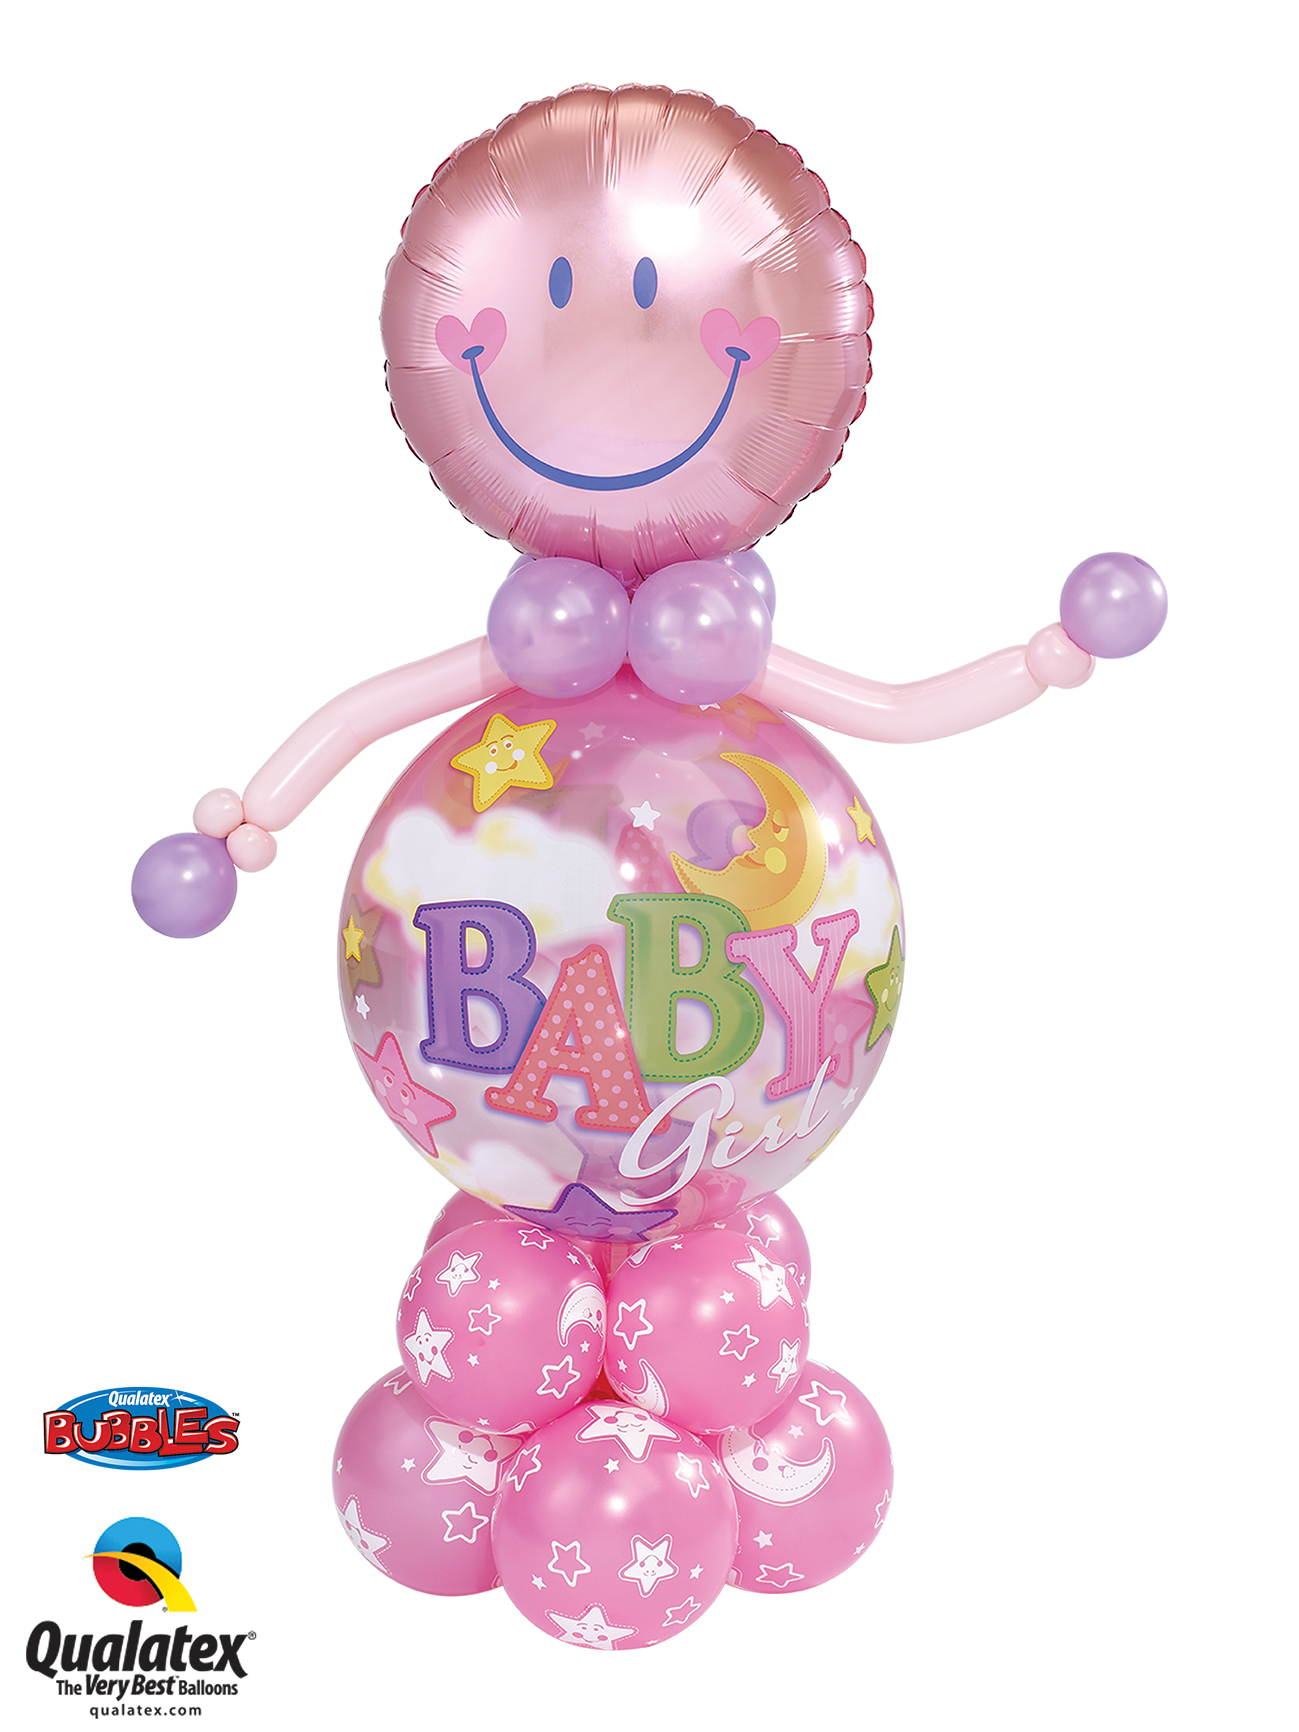 Baby Girl Bubble Buddy